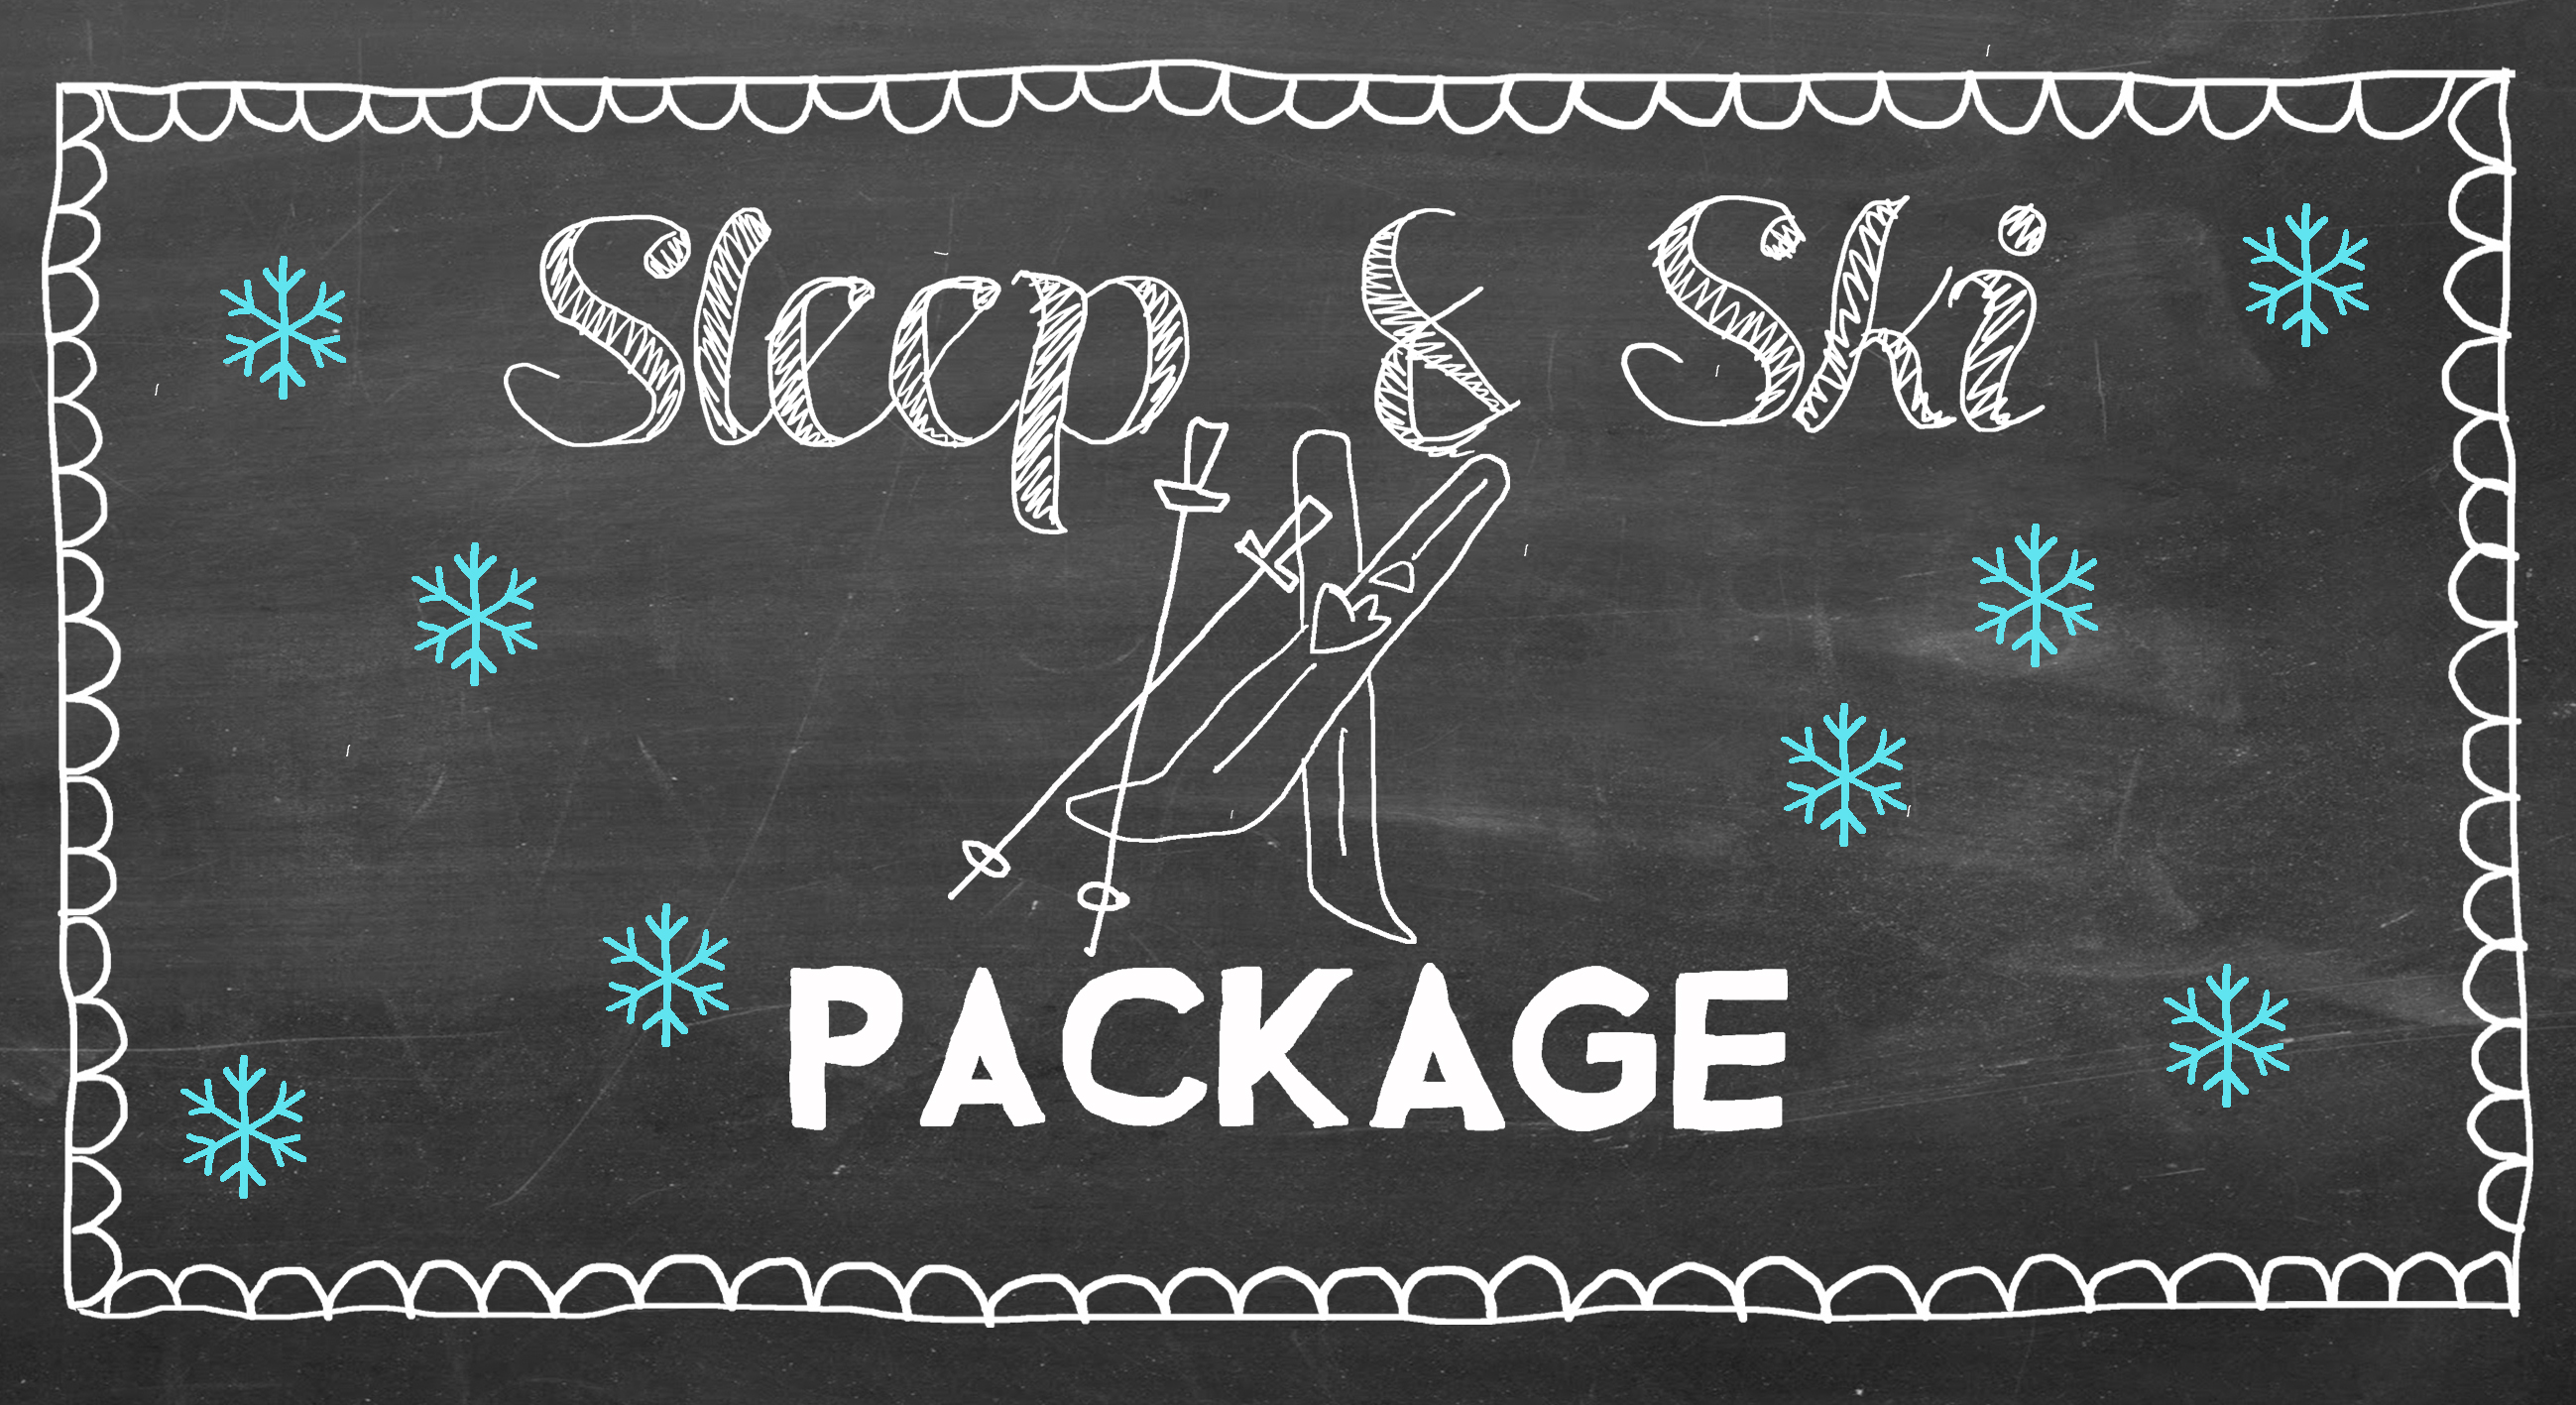 sleep and ski package for balmers hostel interlaken